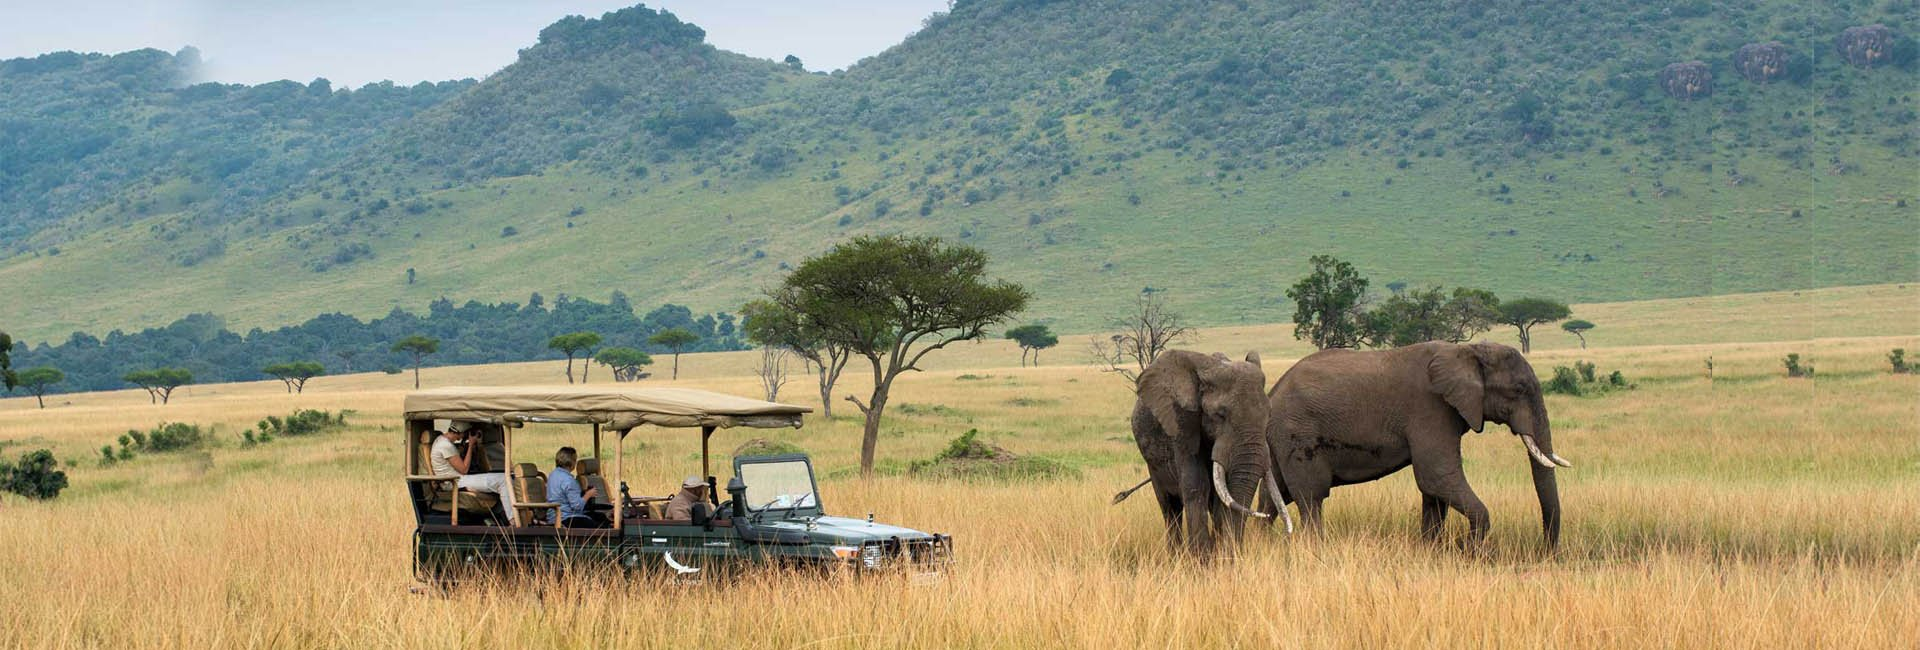 Africa overland tours